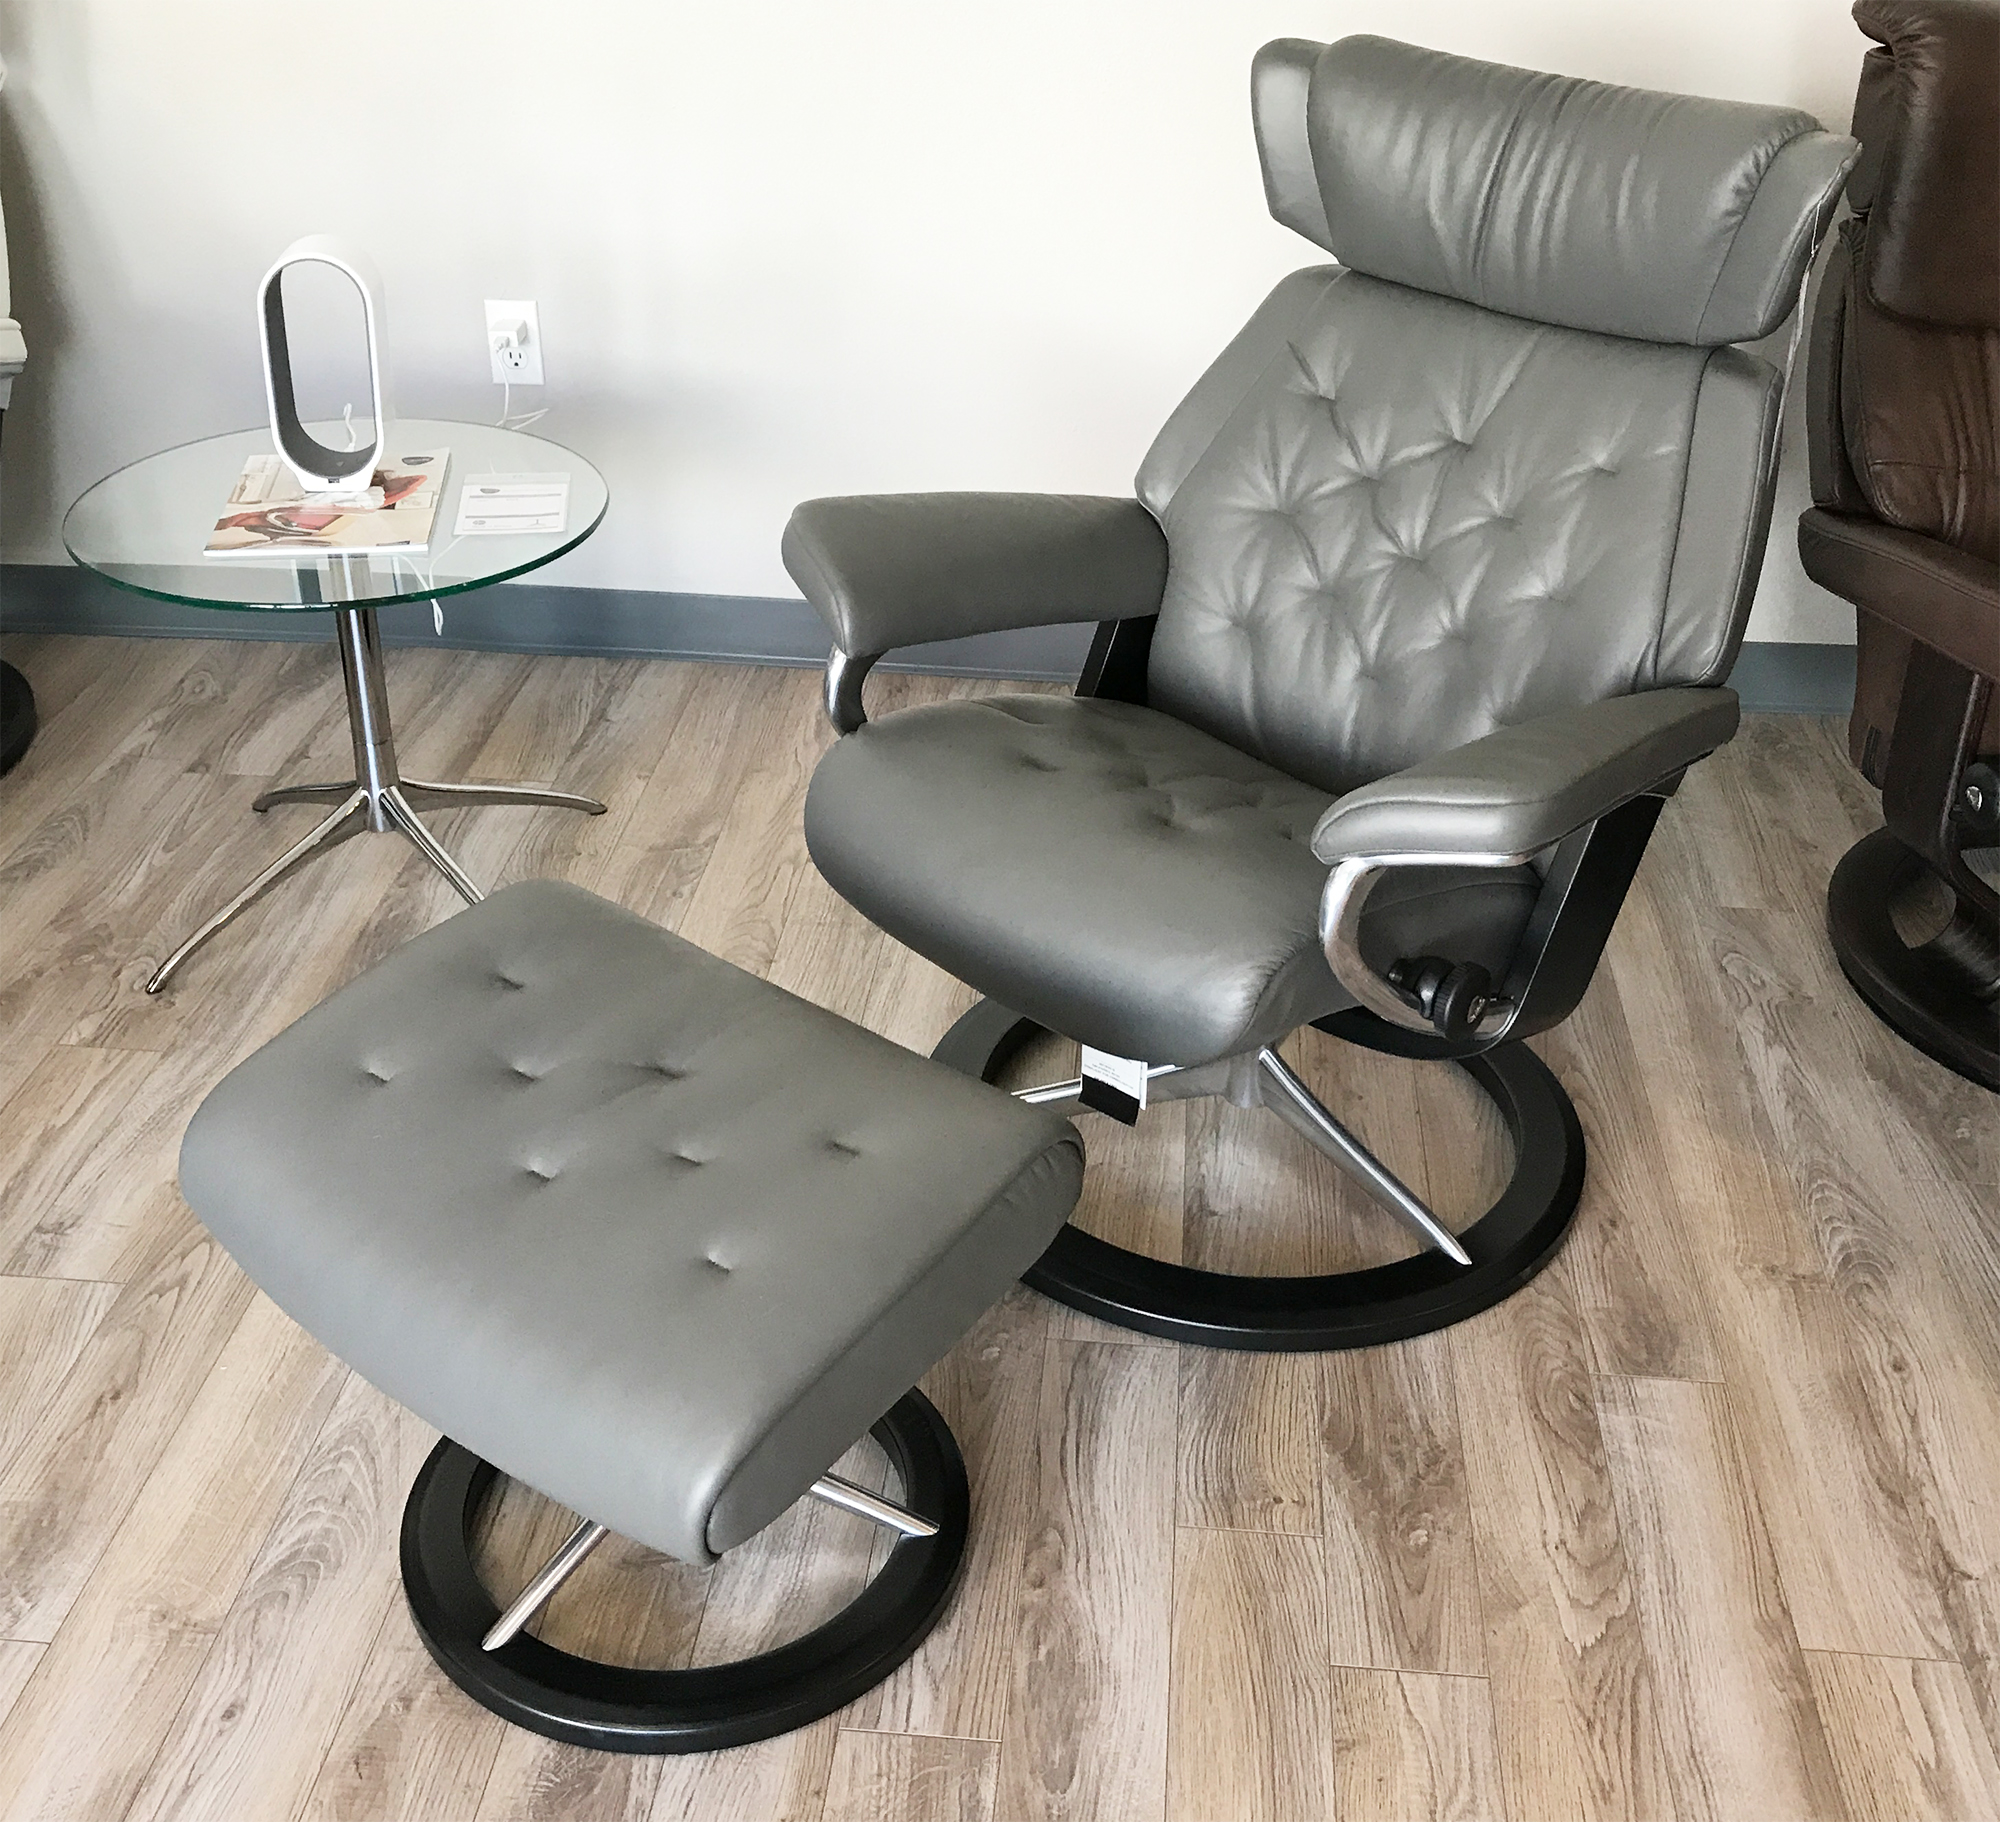 stressless skyline signature base paloma metal grey leather recliner chair and ottoman by ekornes